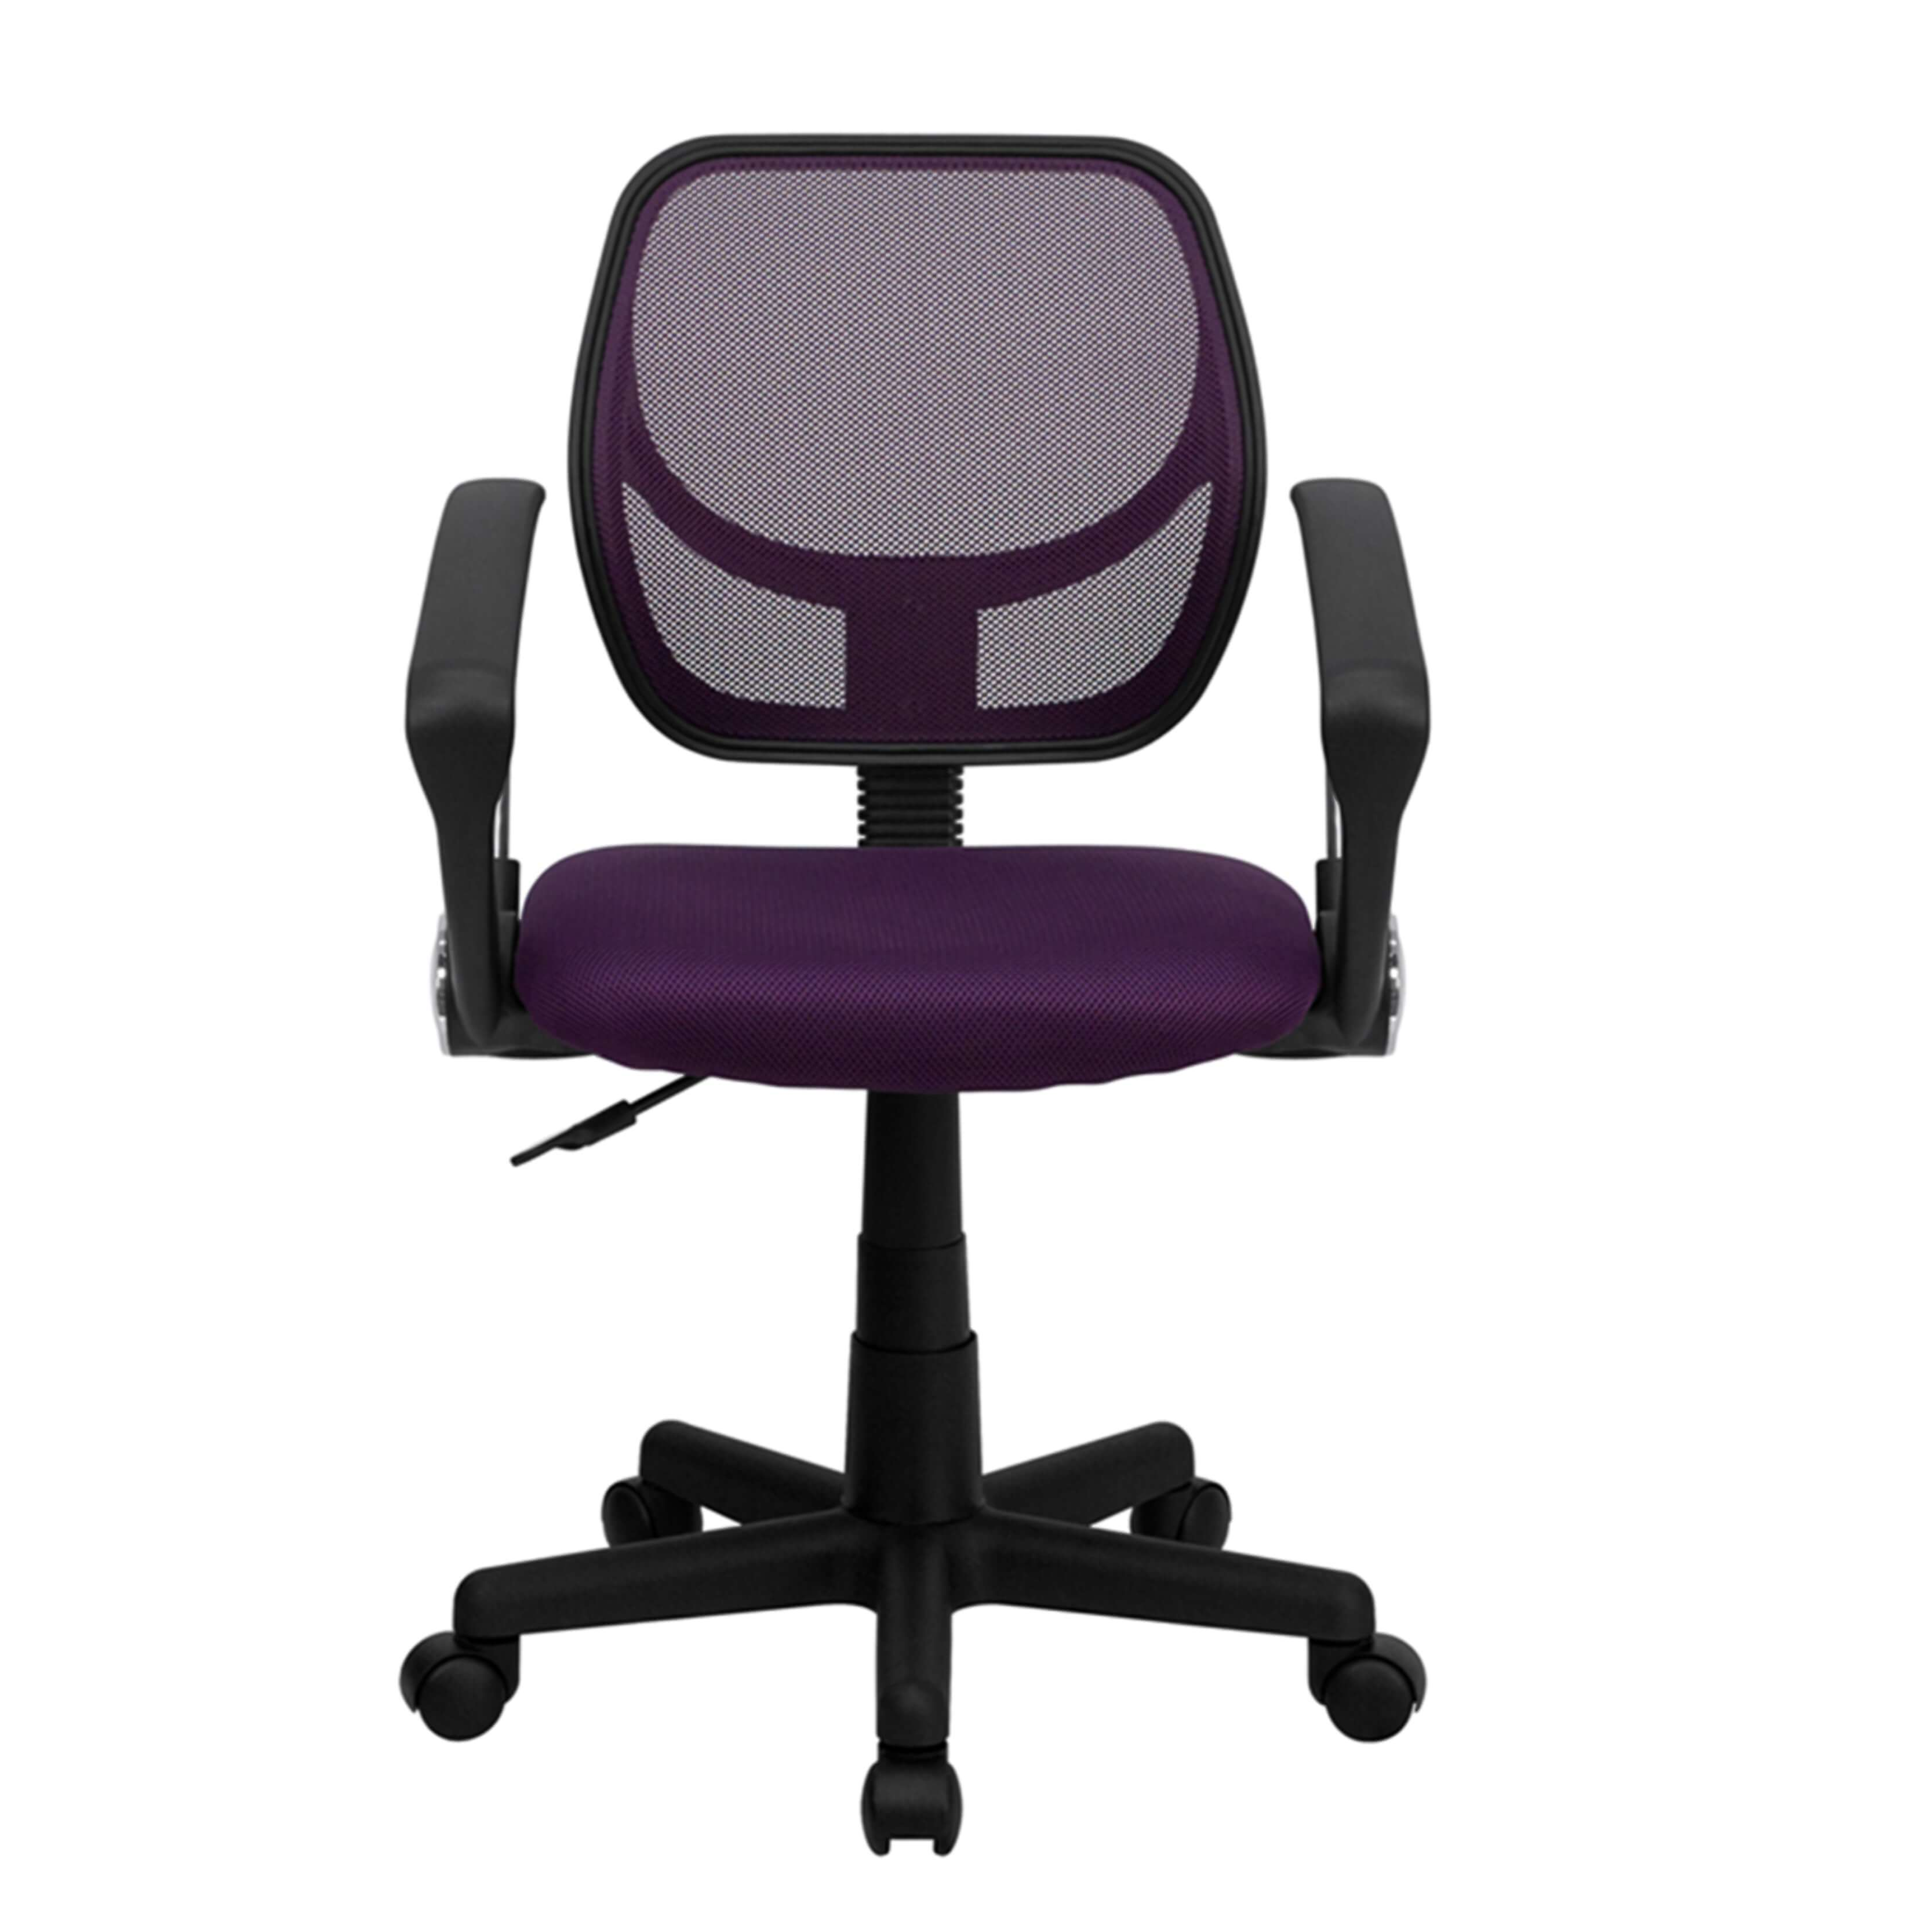 Colorful desk chairs CUB WA 3074 PUR A GG FLA